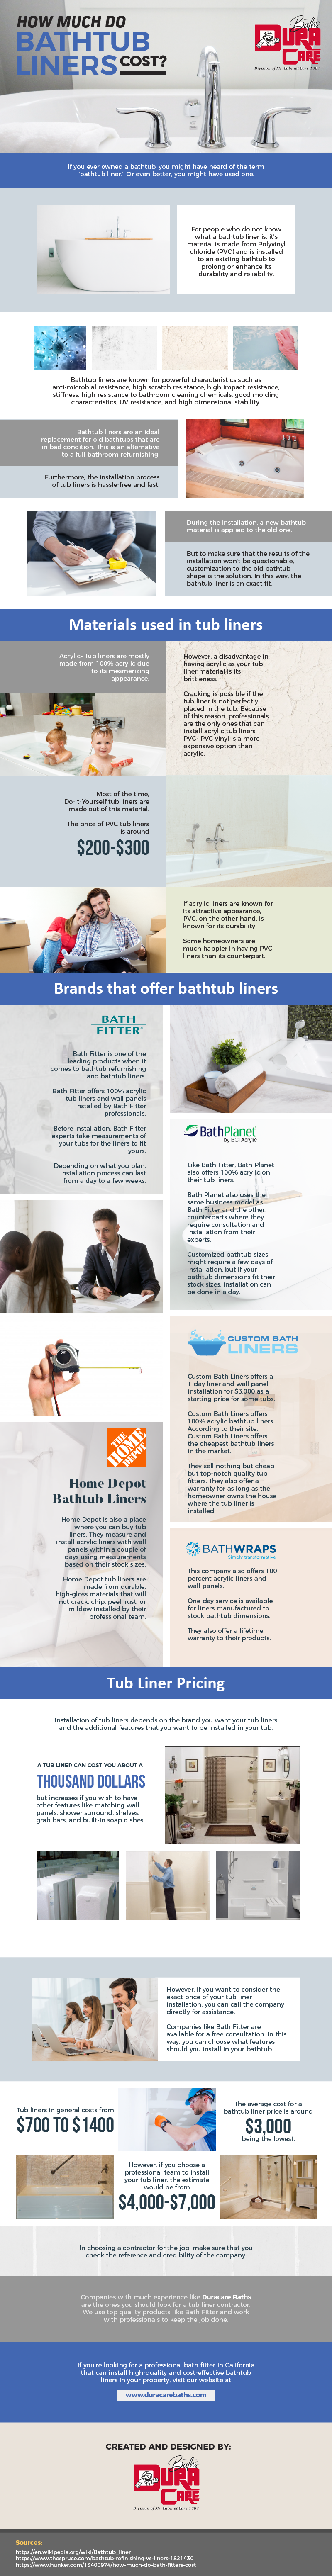 How Much Do Bathtub Liners Cost? - Infographic